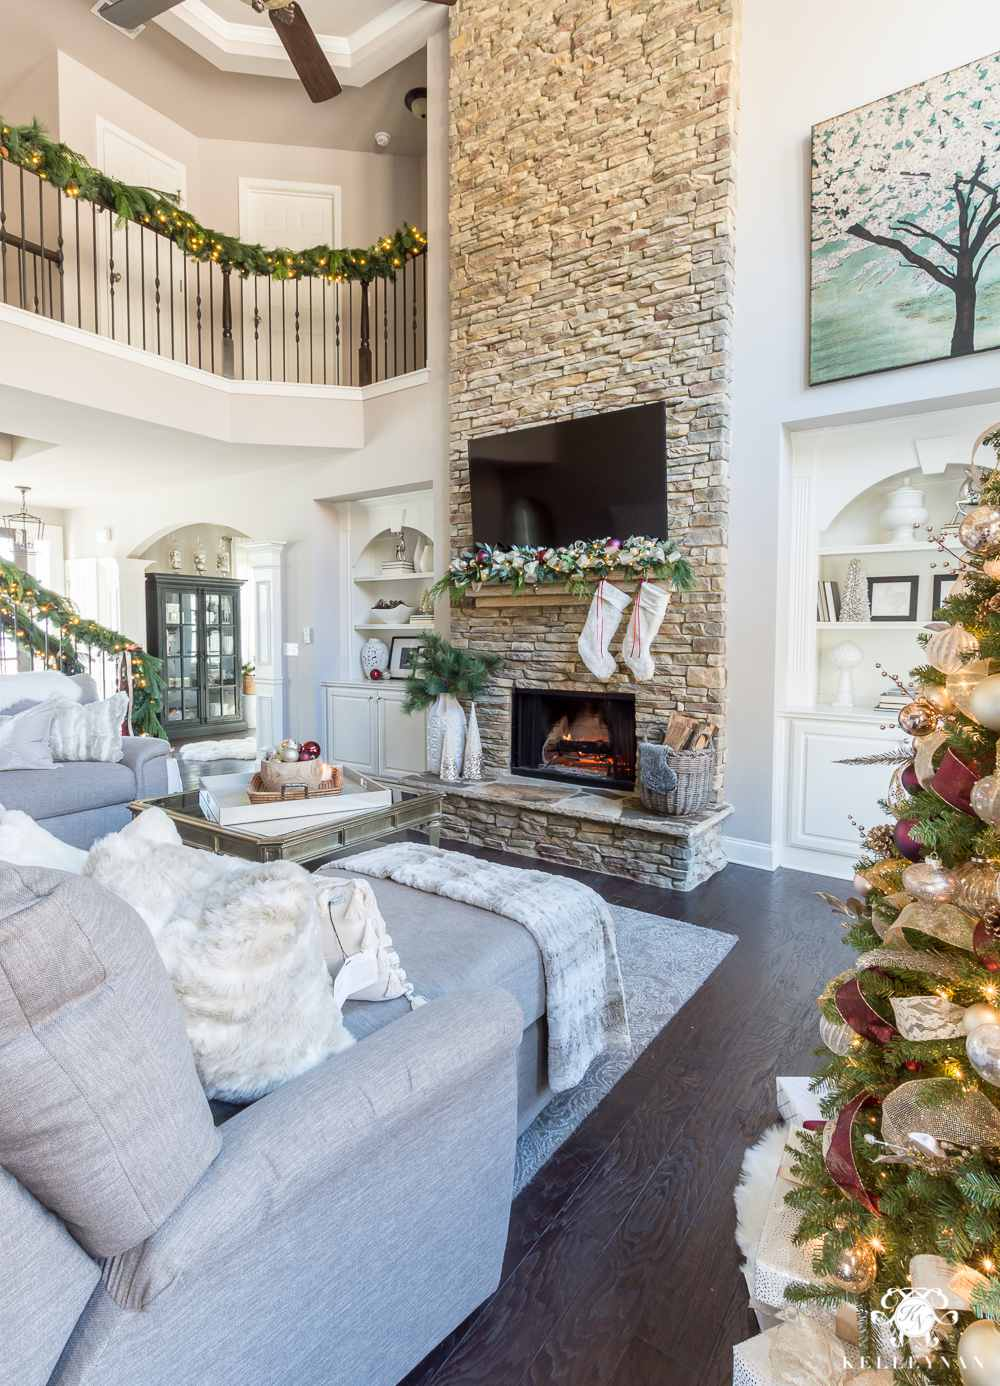 21 Beautiful Ways to Decorate the Living Room for Christmas on xmas home windows, xmas crafts, xmas home dishes, xmas fashion, xmas hats, xmas cards, xmas candy, xmas bedding, xmas food, xmas diy, xmas decorations, xmas quilts, xmas recipes, xmas flowers, xmas living room, xmas wreaths,